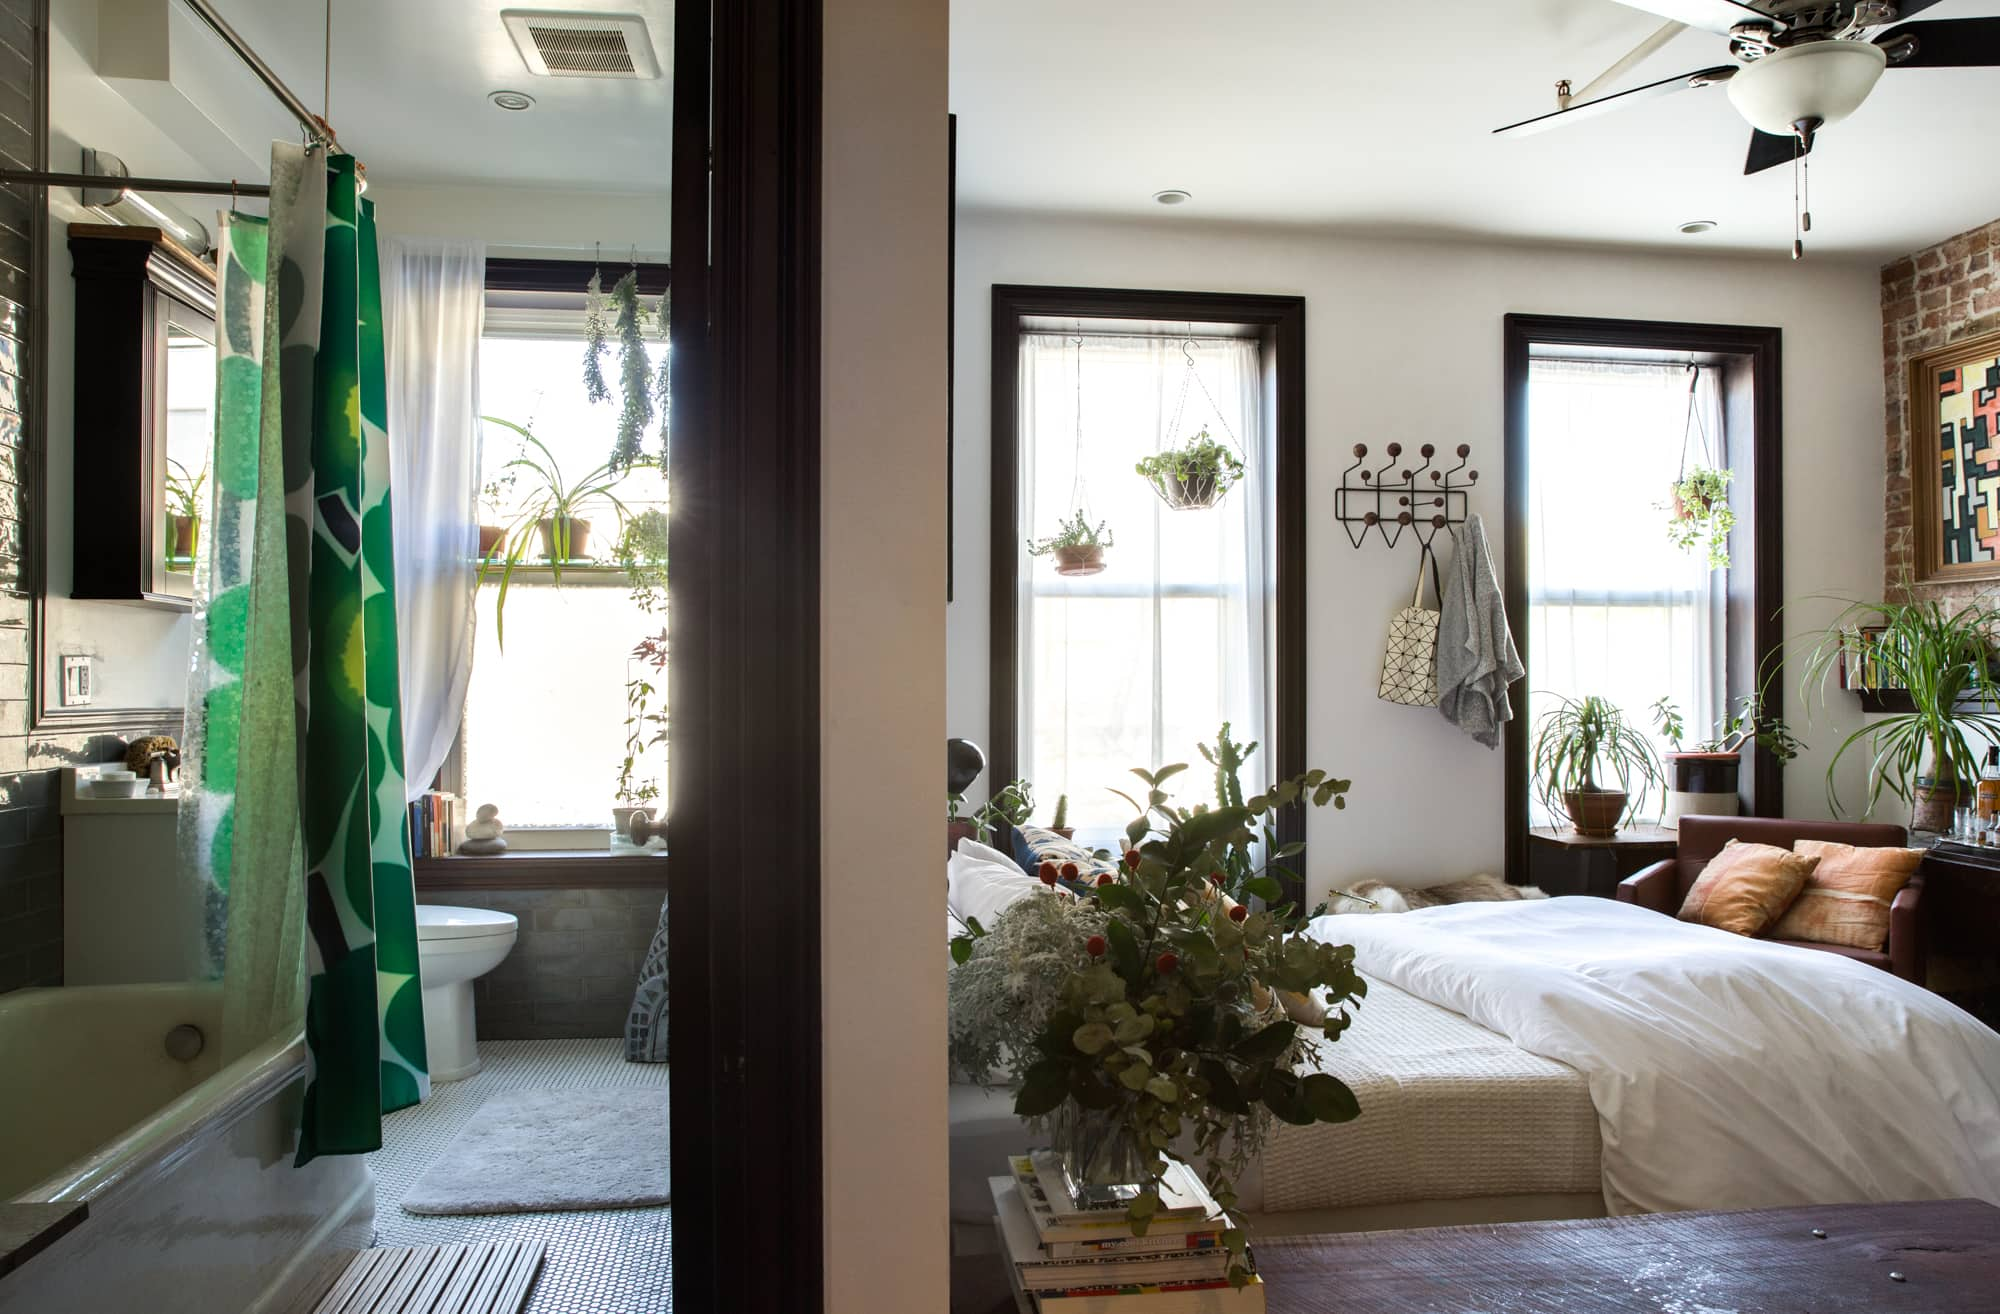 House Tour: A 280 Square Foot Brooklyn Studio Apartment